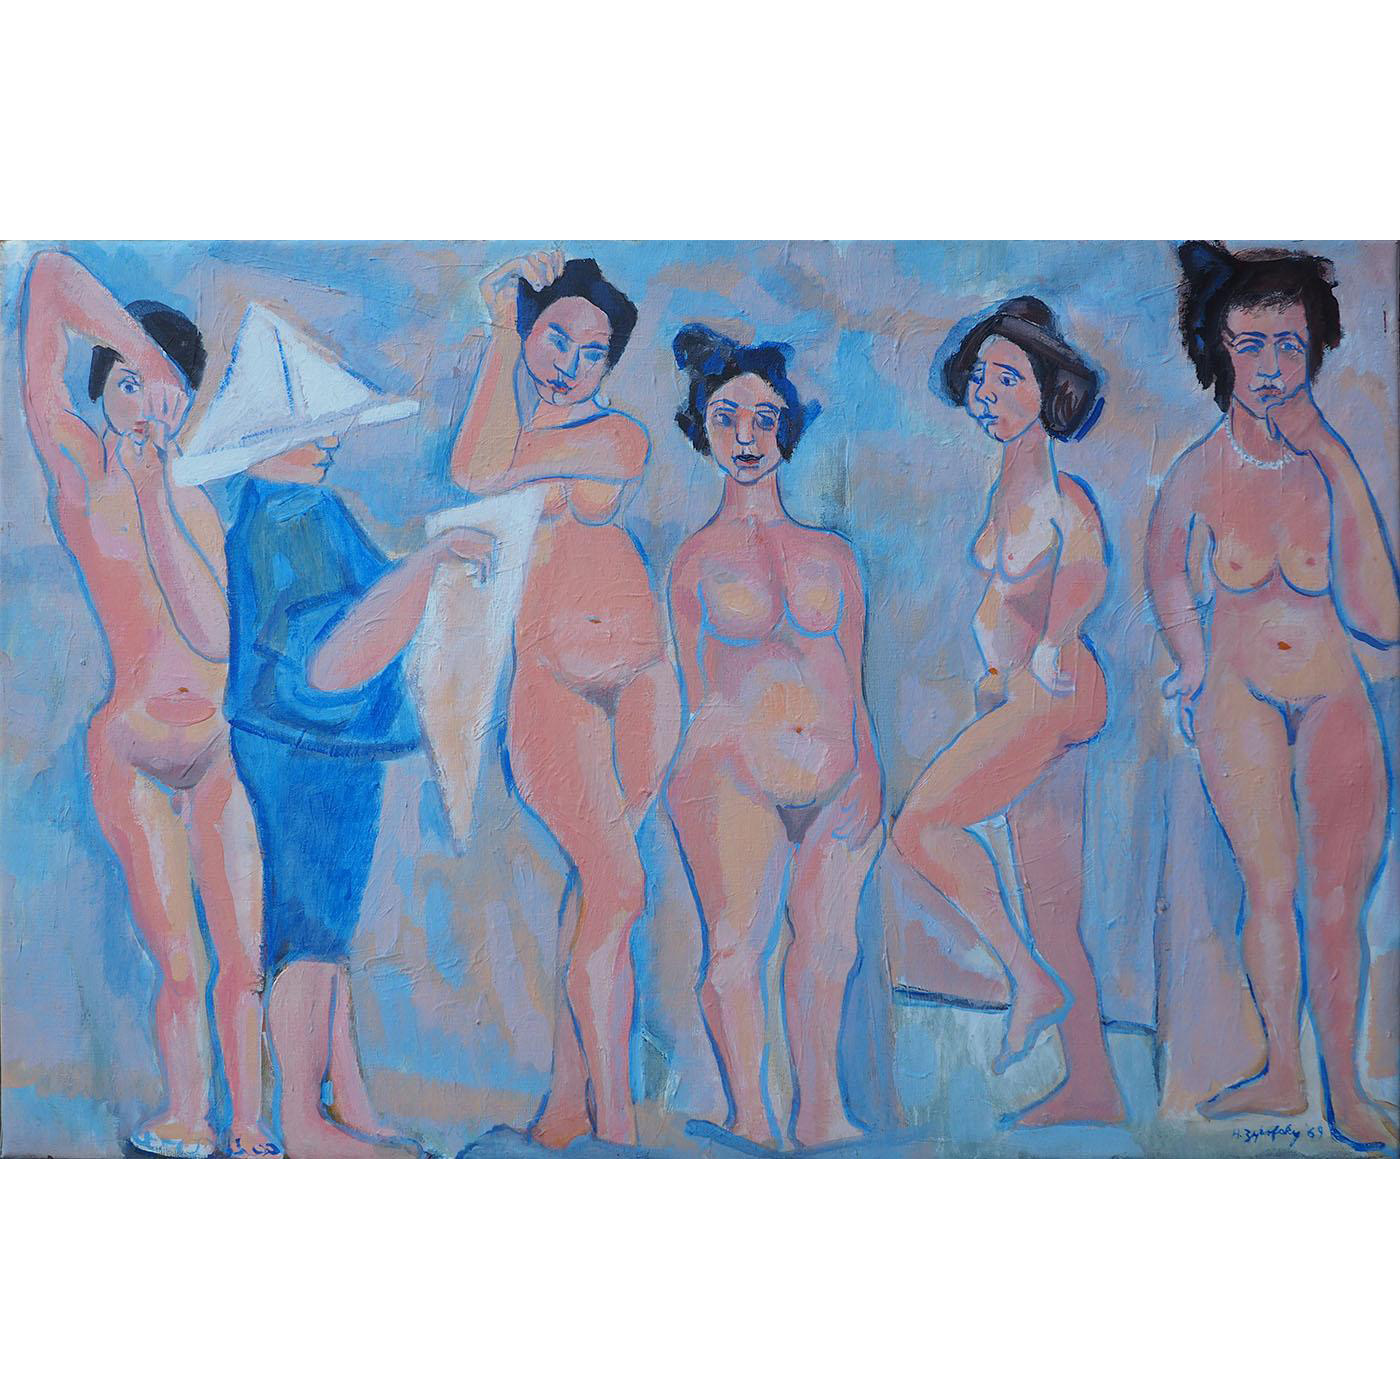 Vintage modern nude figures abstract surreal strange oil painting by Zurofsky